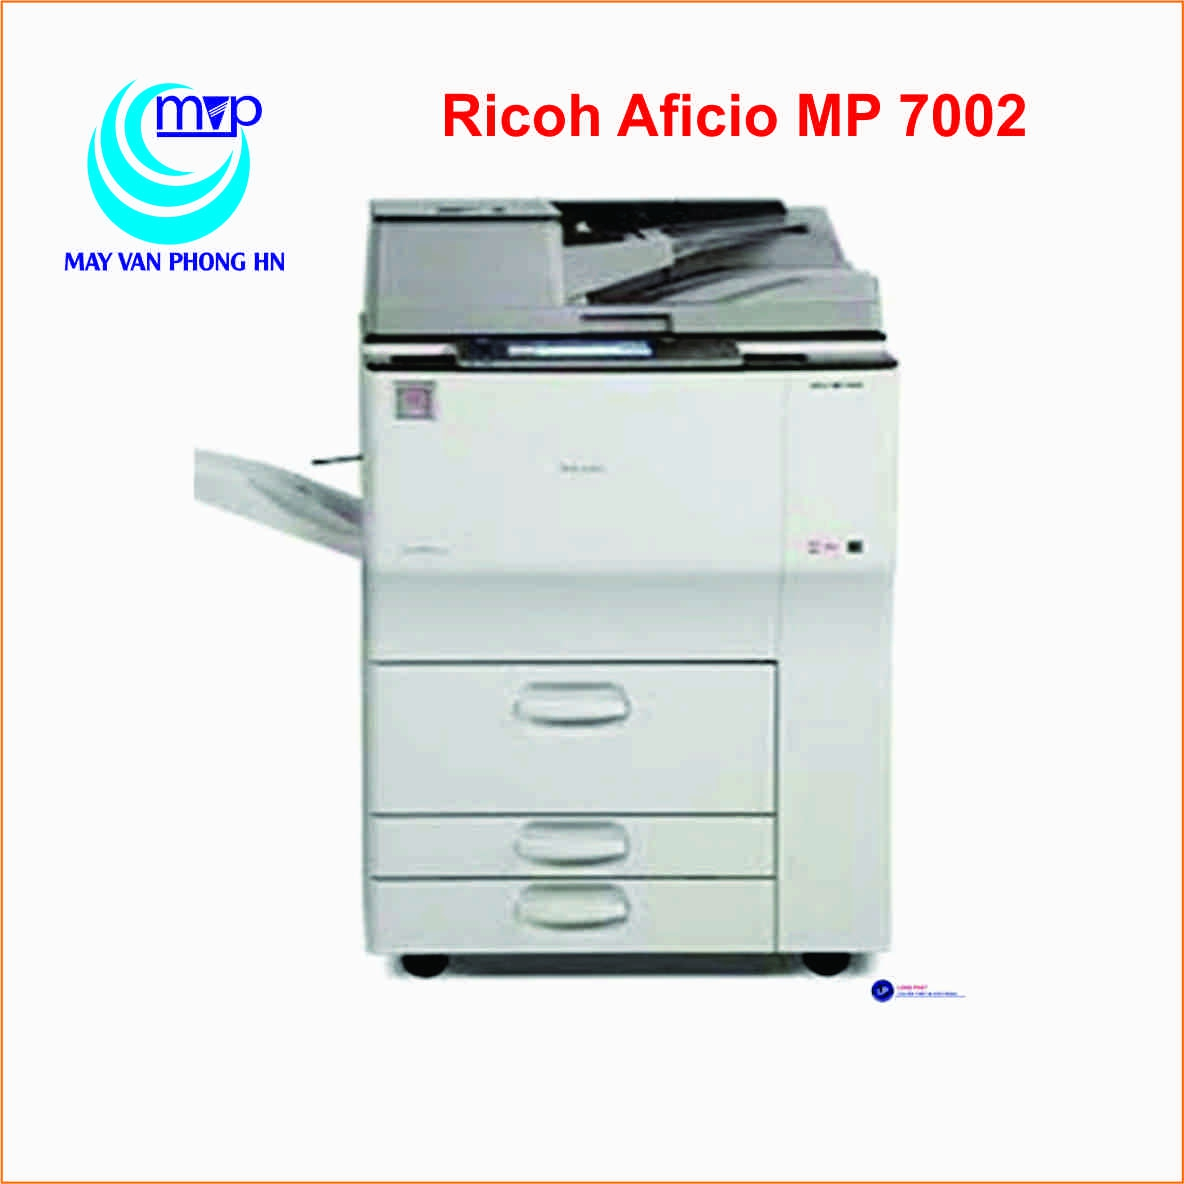 Ricoh Aficio MP 7002